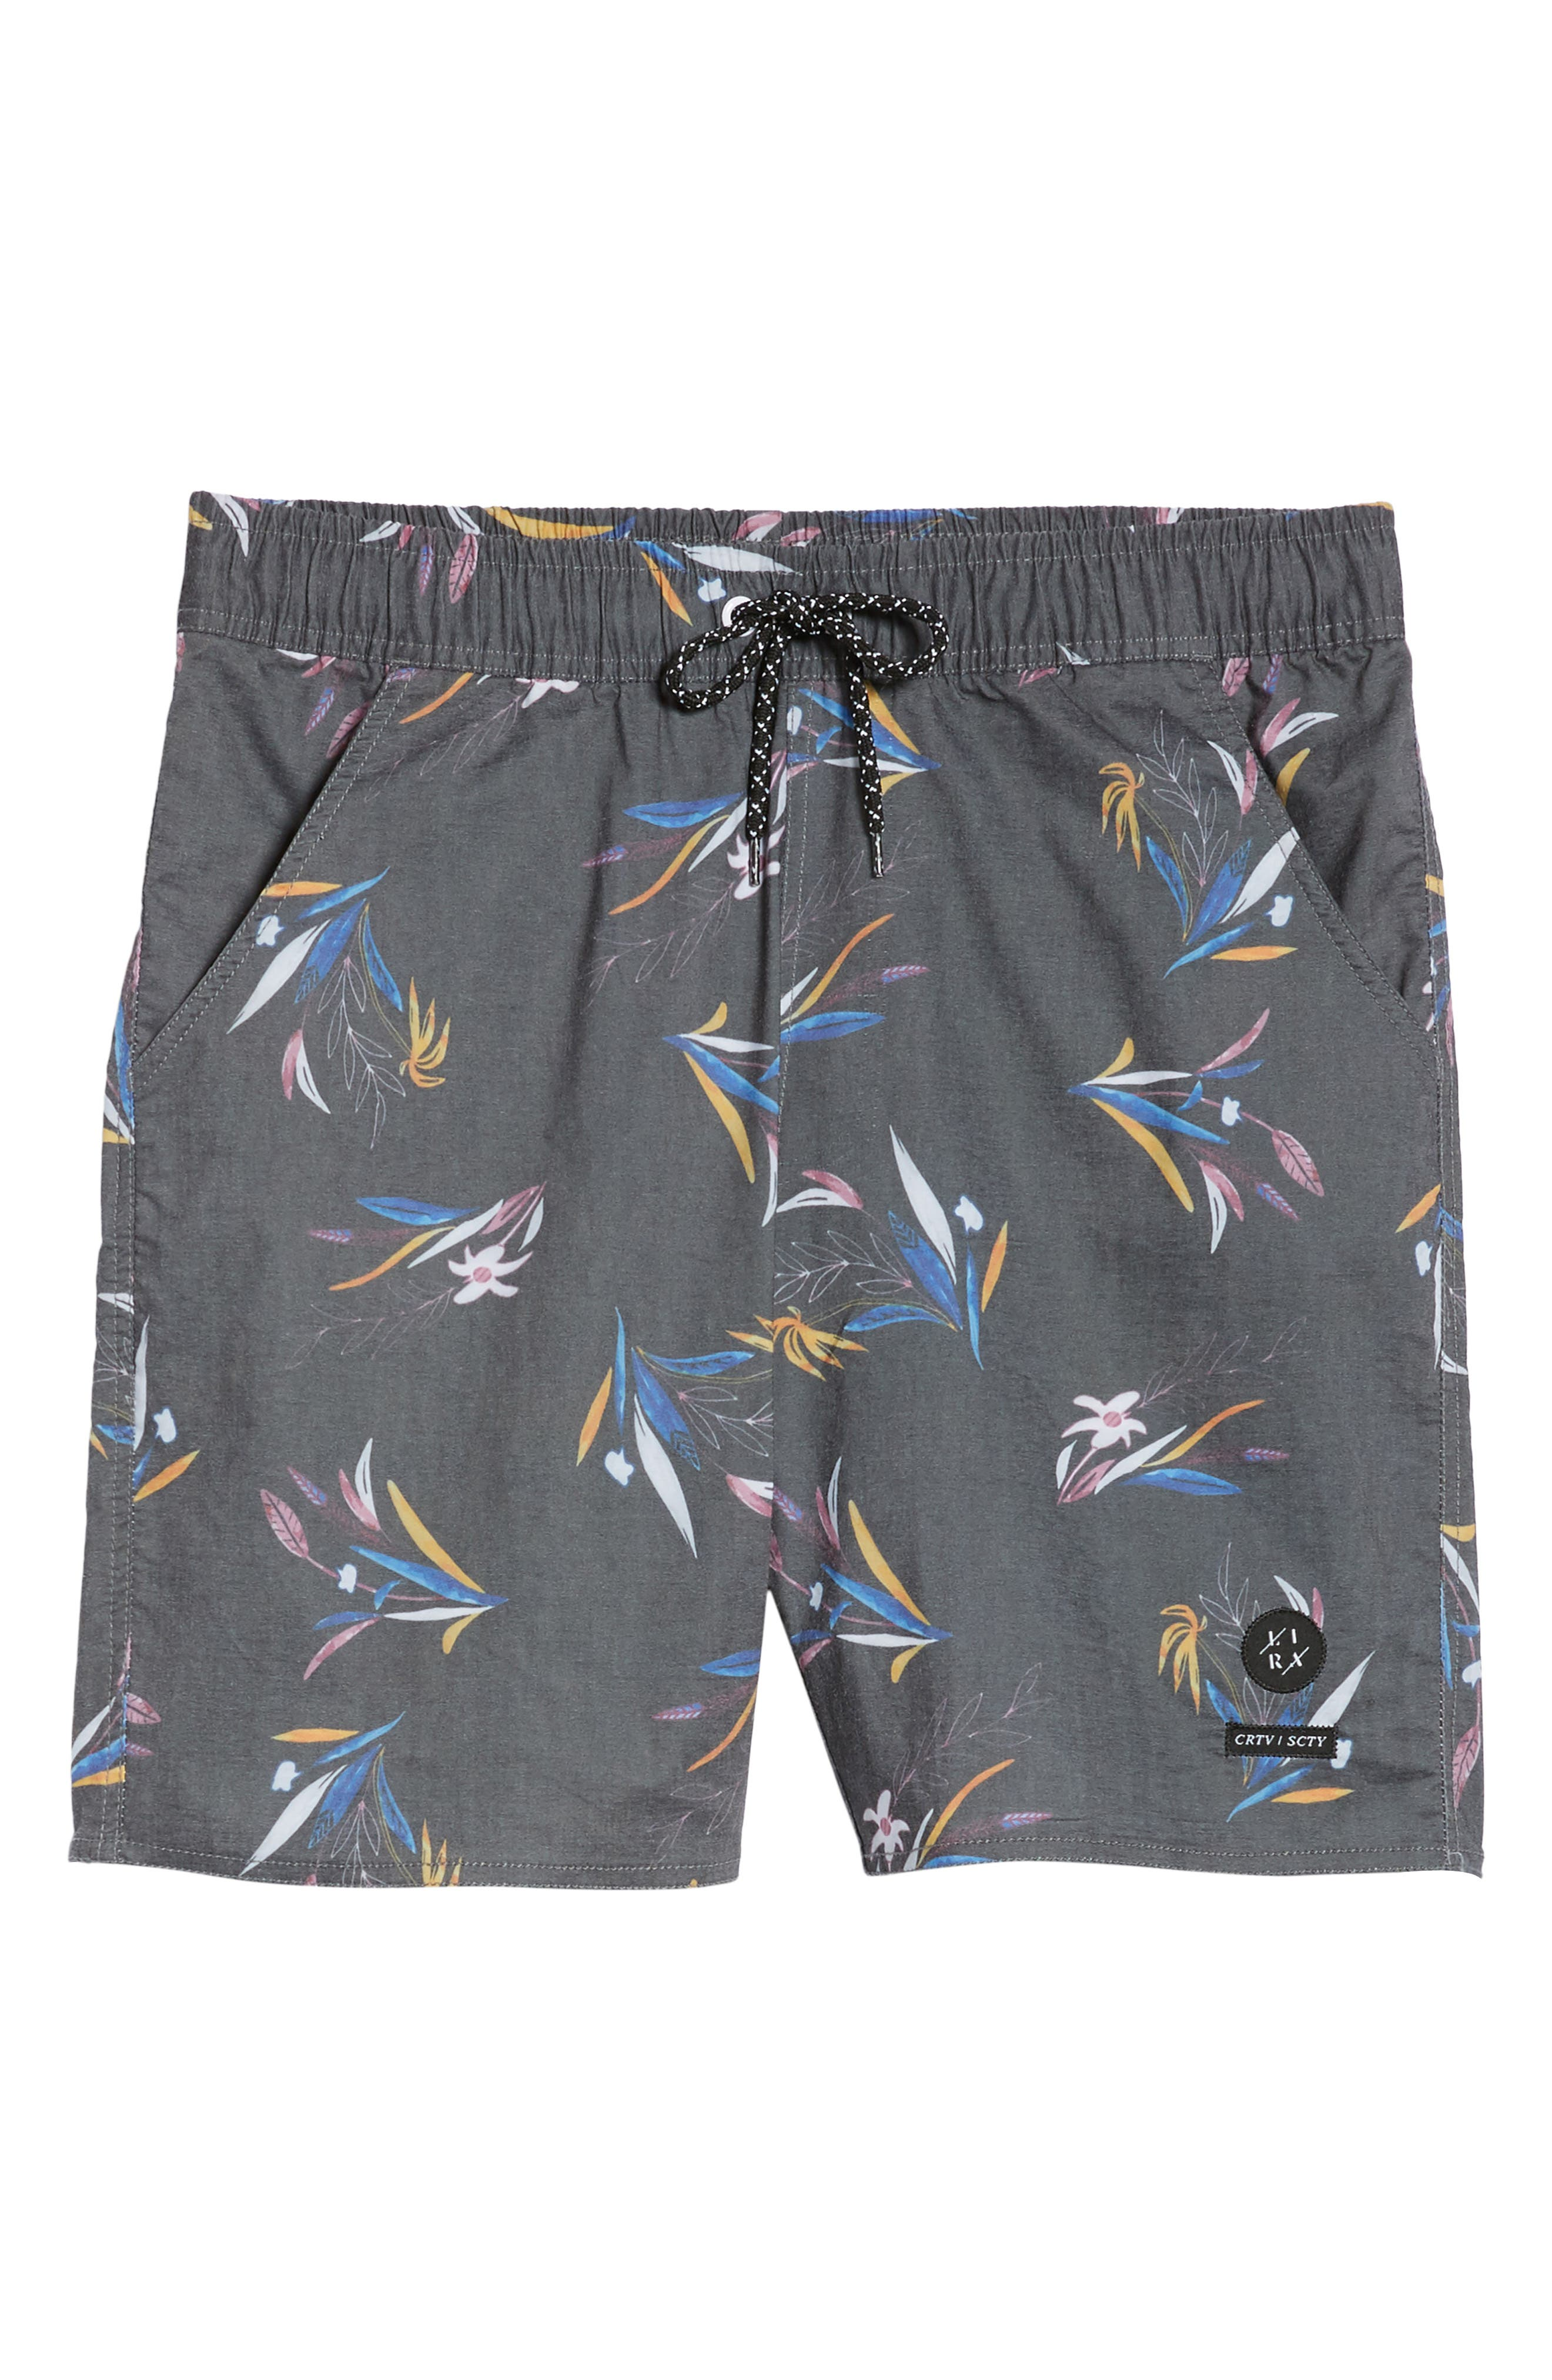 Swelter Board Shorts,                             Alternate thumbnail 6, color,